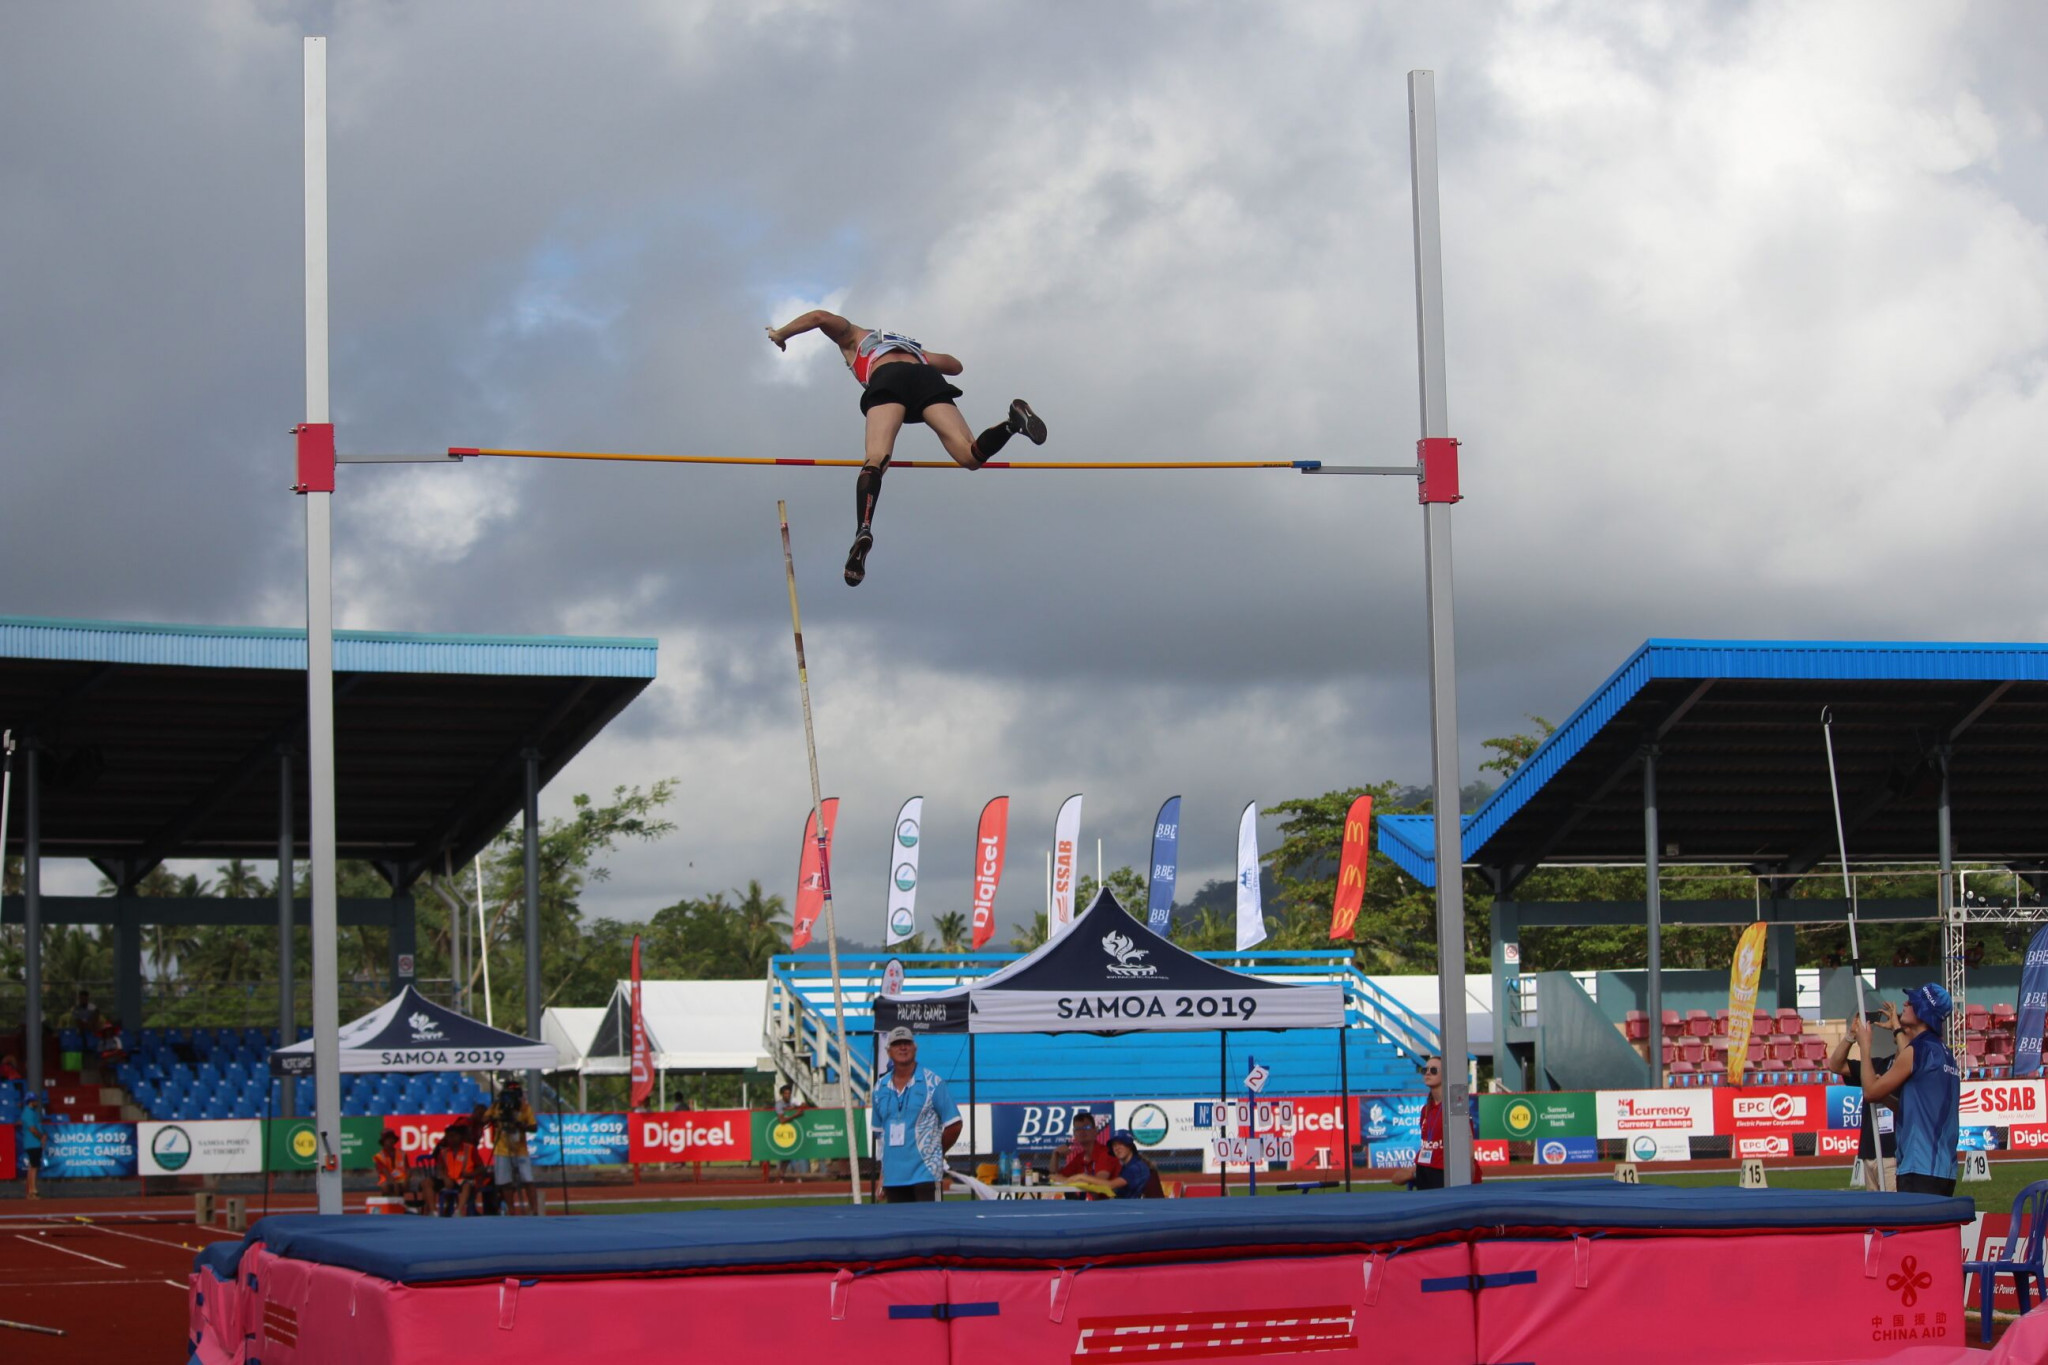 A competitor makes an attempt at the pole vault at Apia Park on Wednesday ©Games News Service